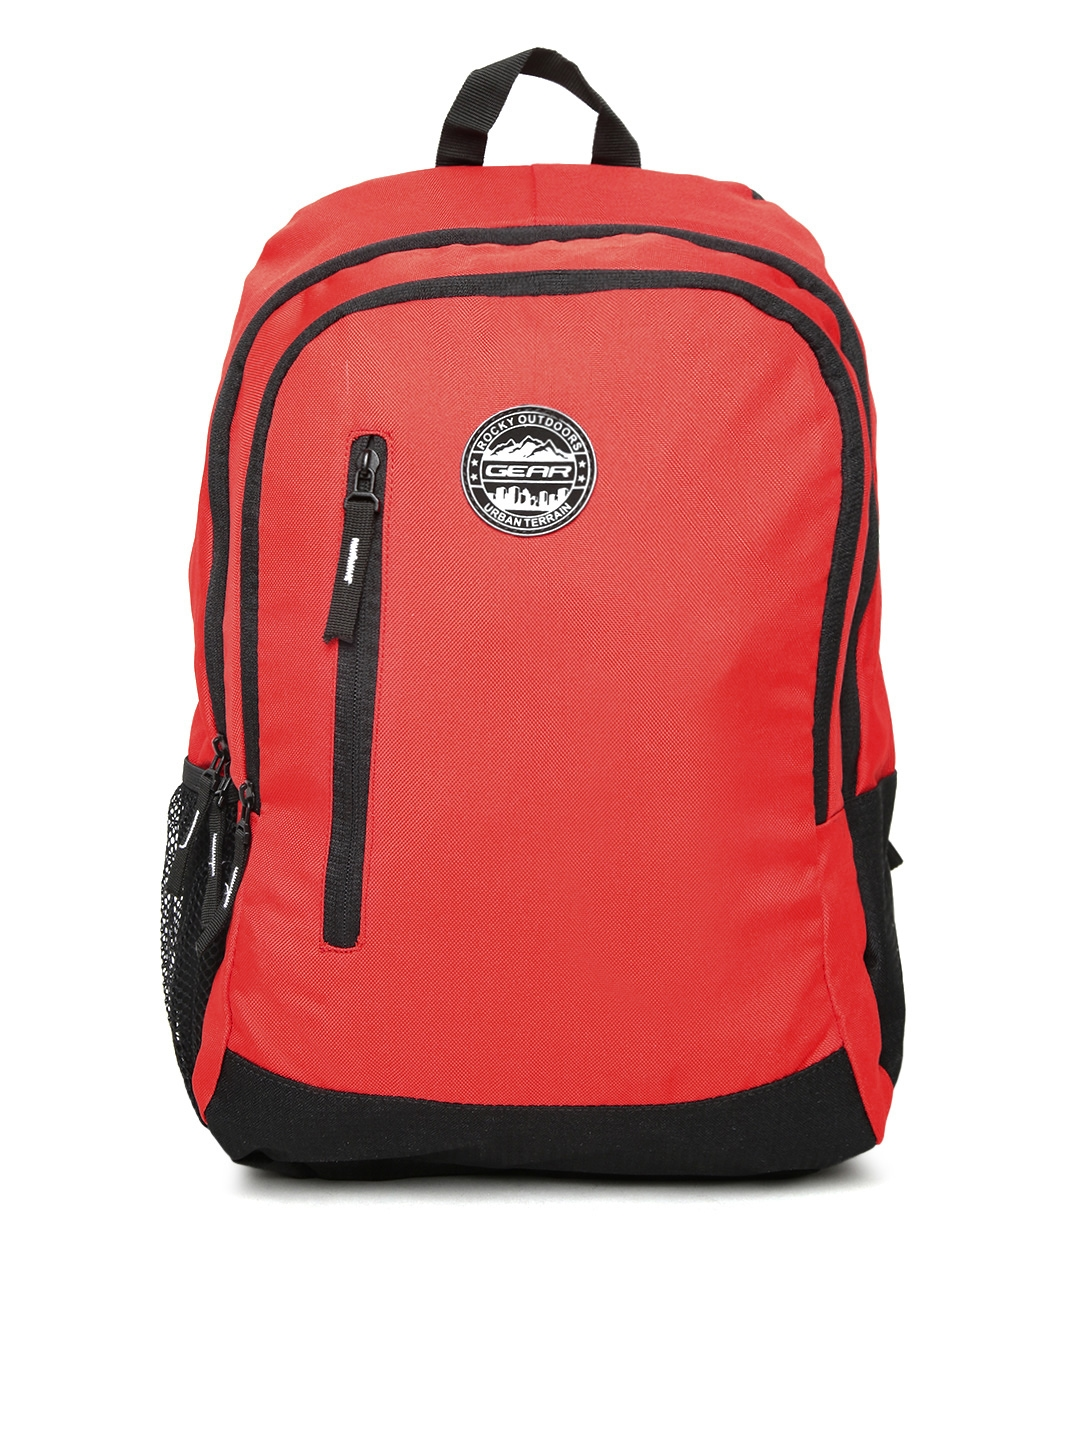 Gear Unisex Orange   Black Eco 4 Waterproof Backpack